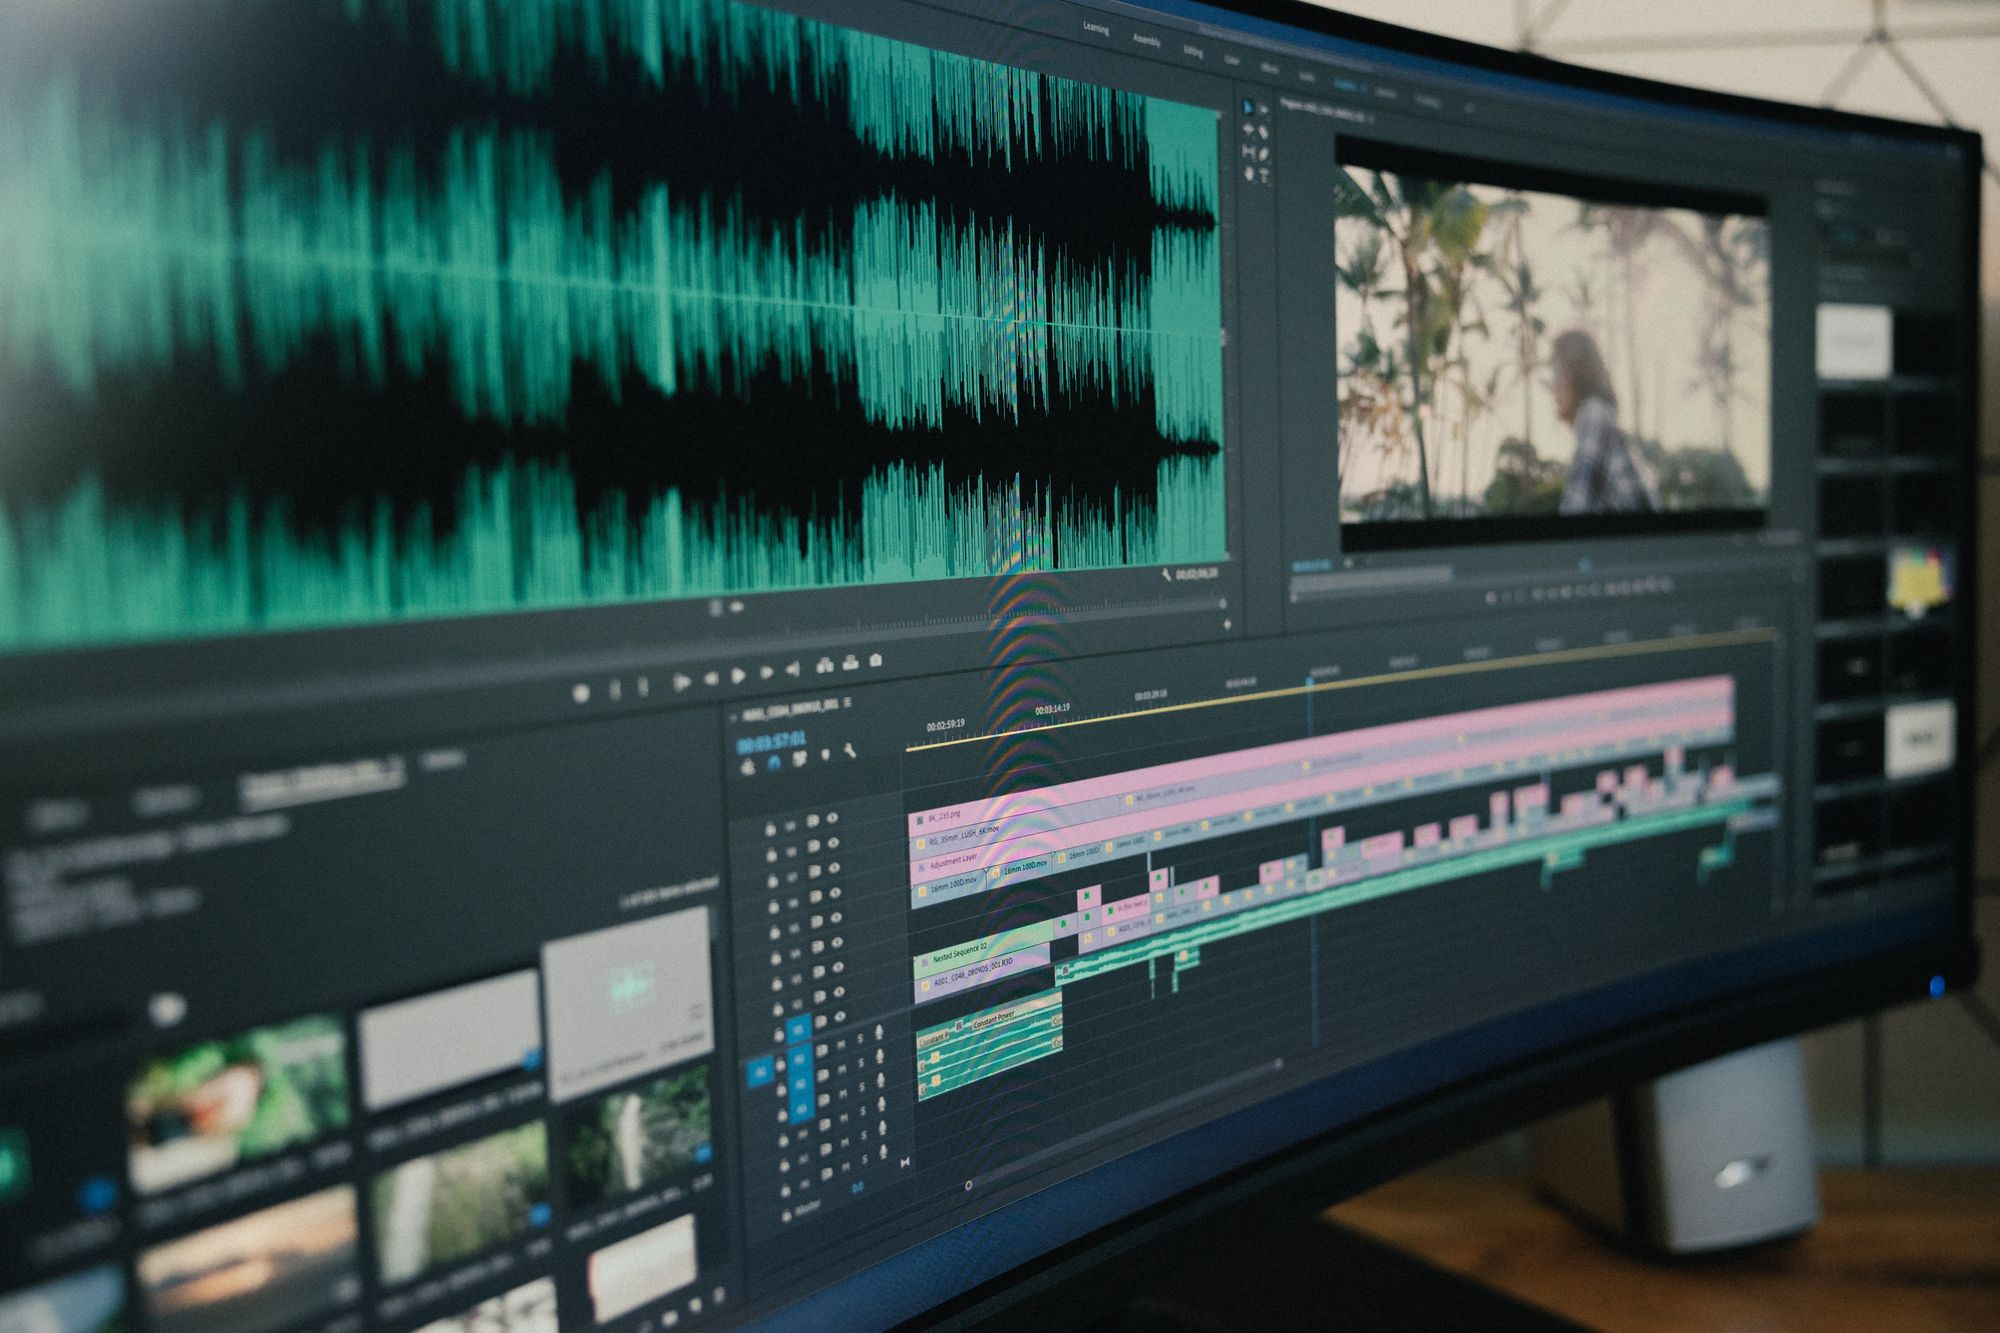 The post-production phase is where all the editing happens